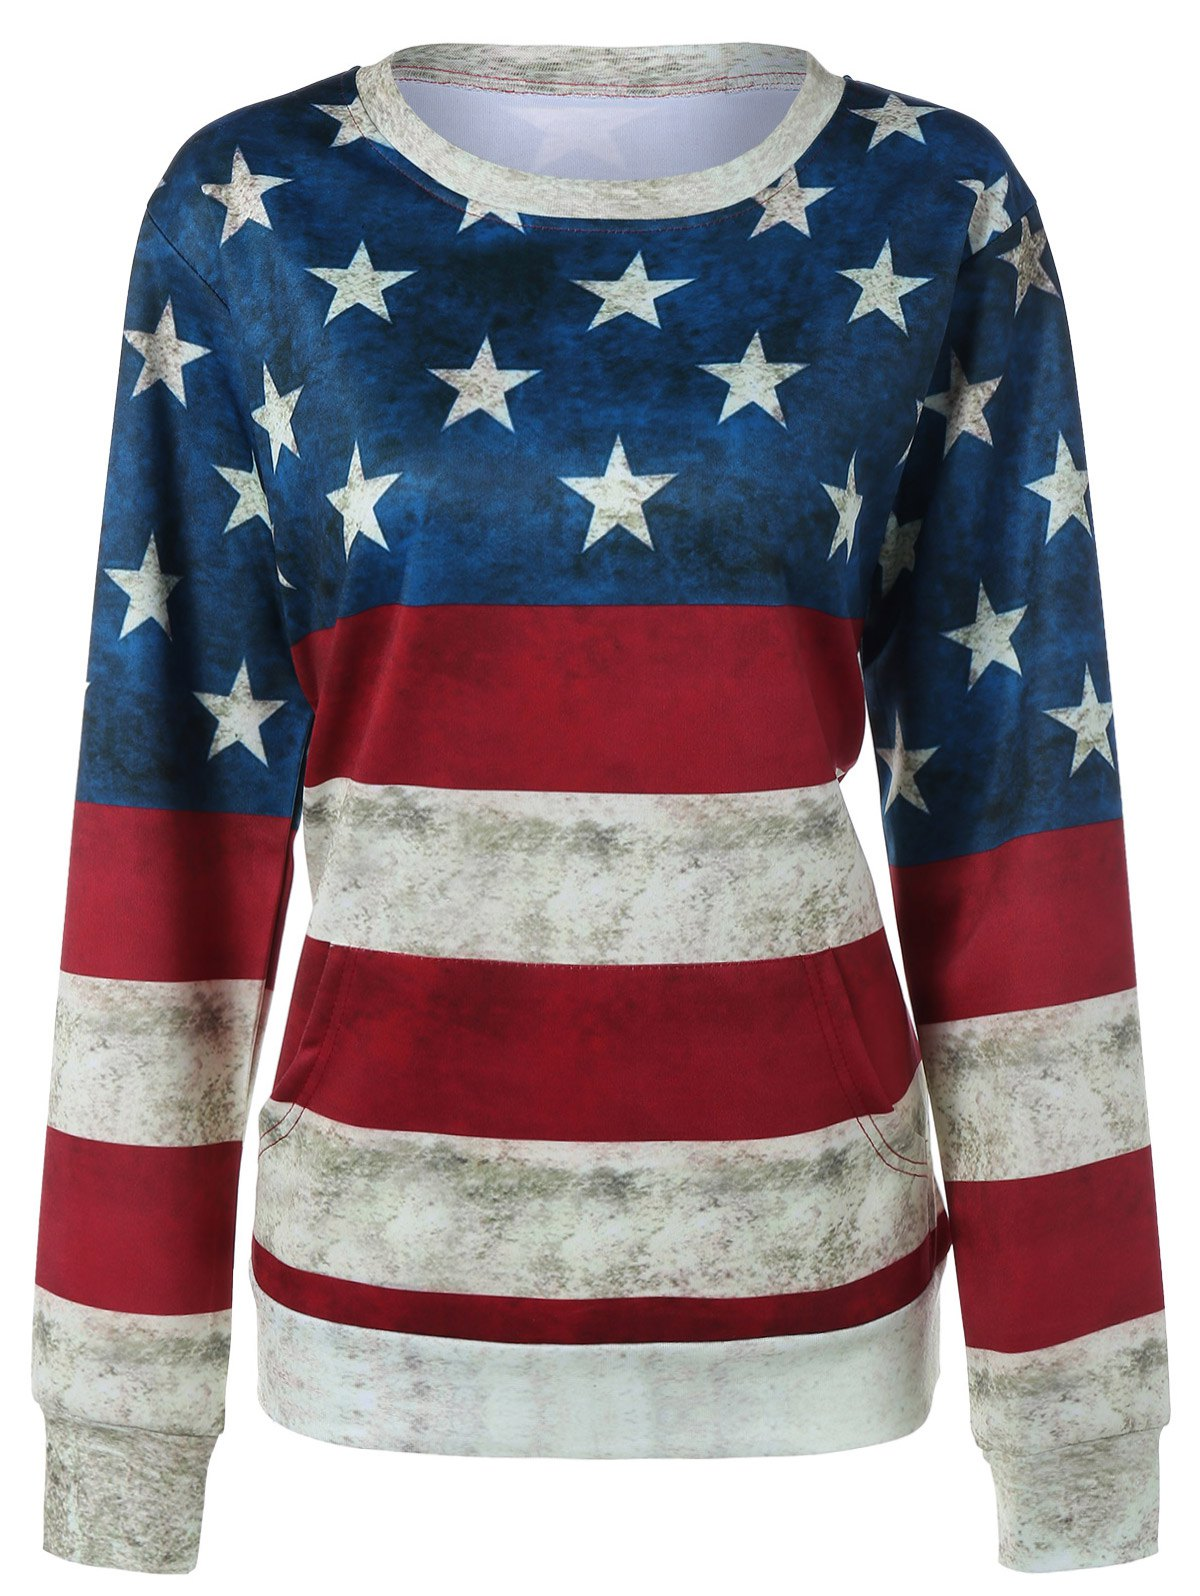 Contrast Star Print Striped Sweatshirt ancient house printed wall decor hanging tapestry